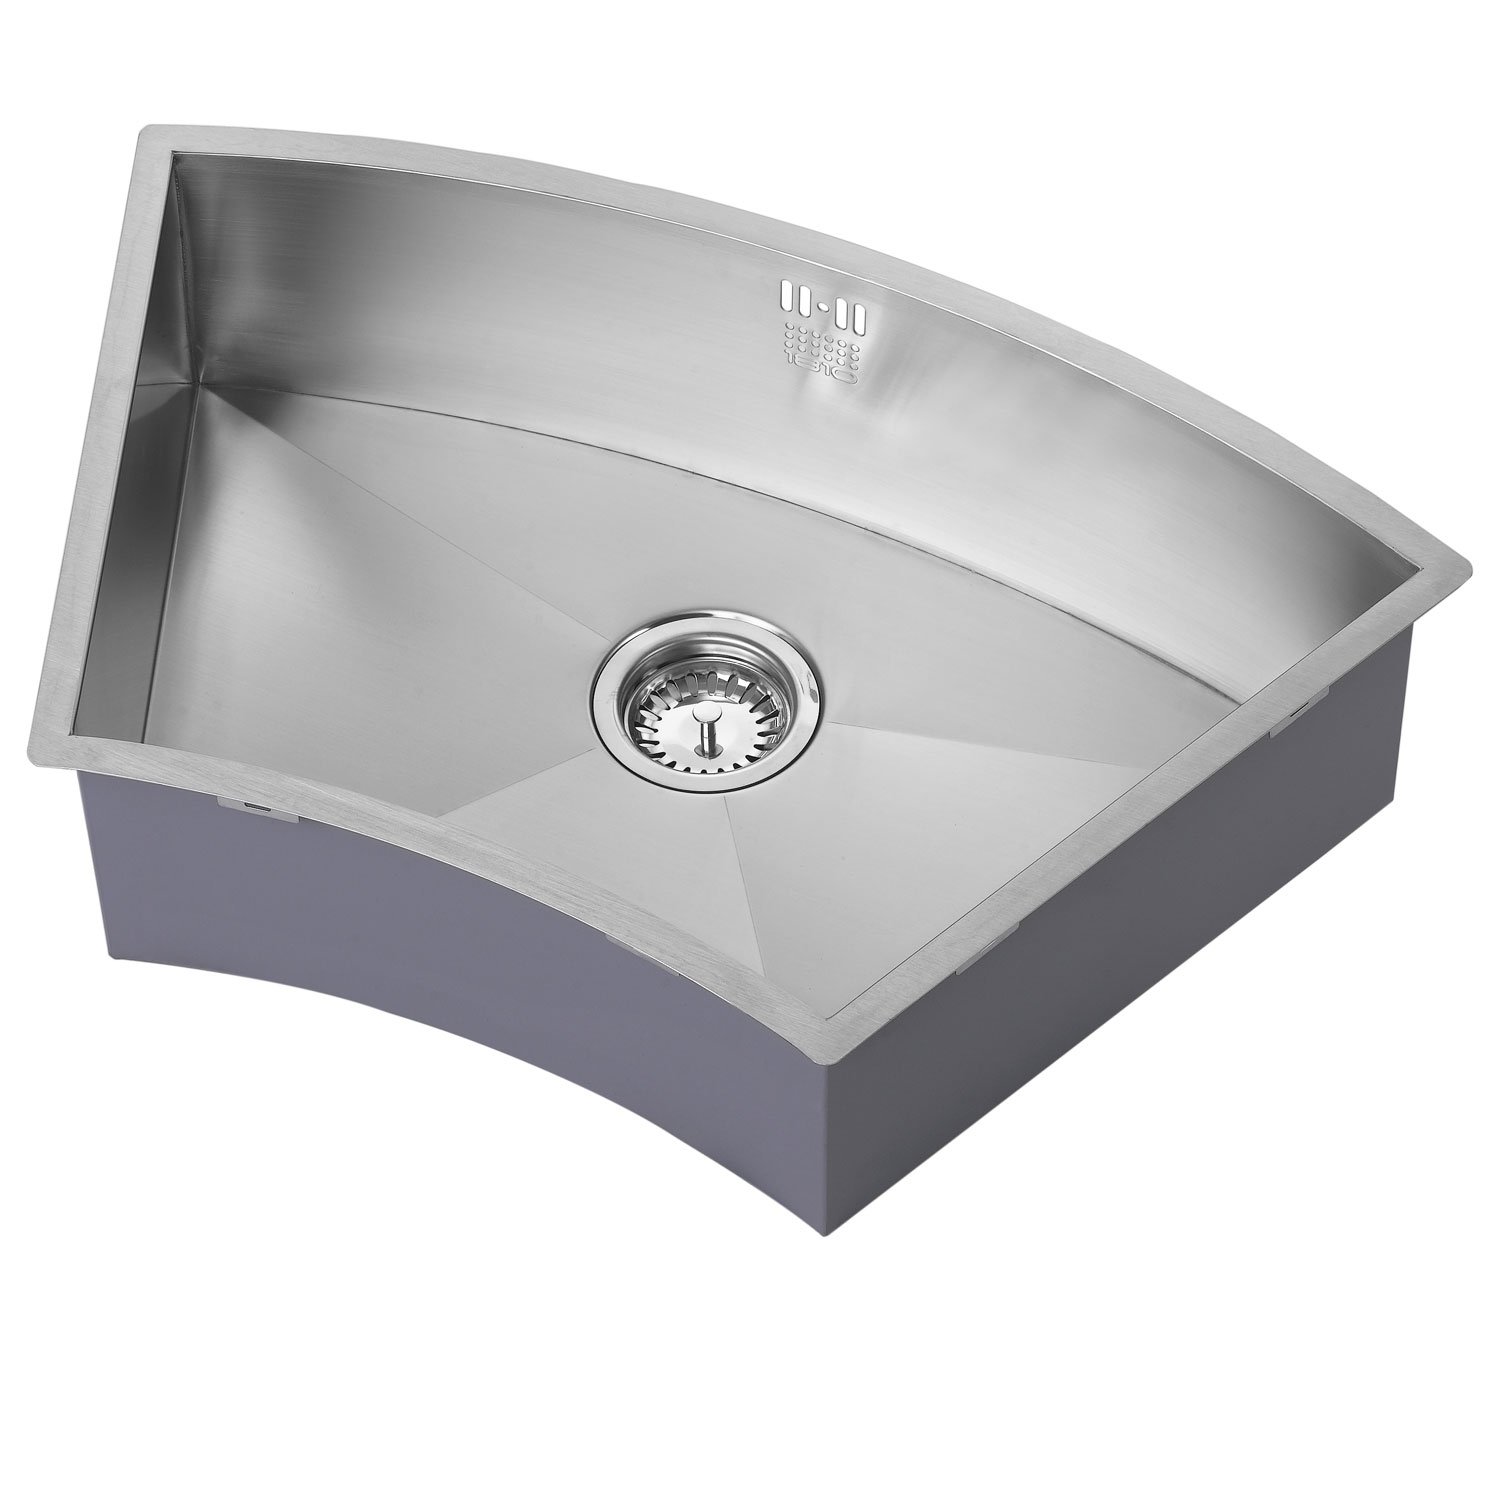 The 1810 Company Zenuno 675U Curve 1.0 Bowl Kitchen Sink - Stainless Steel-0